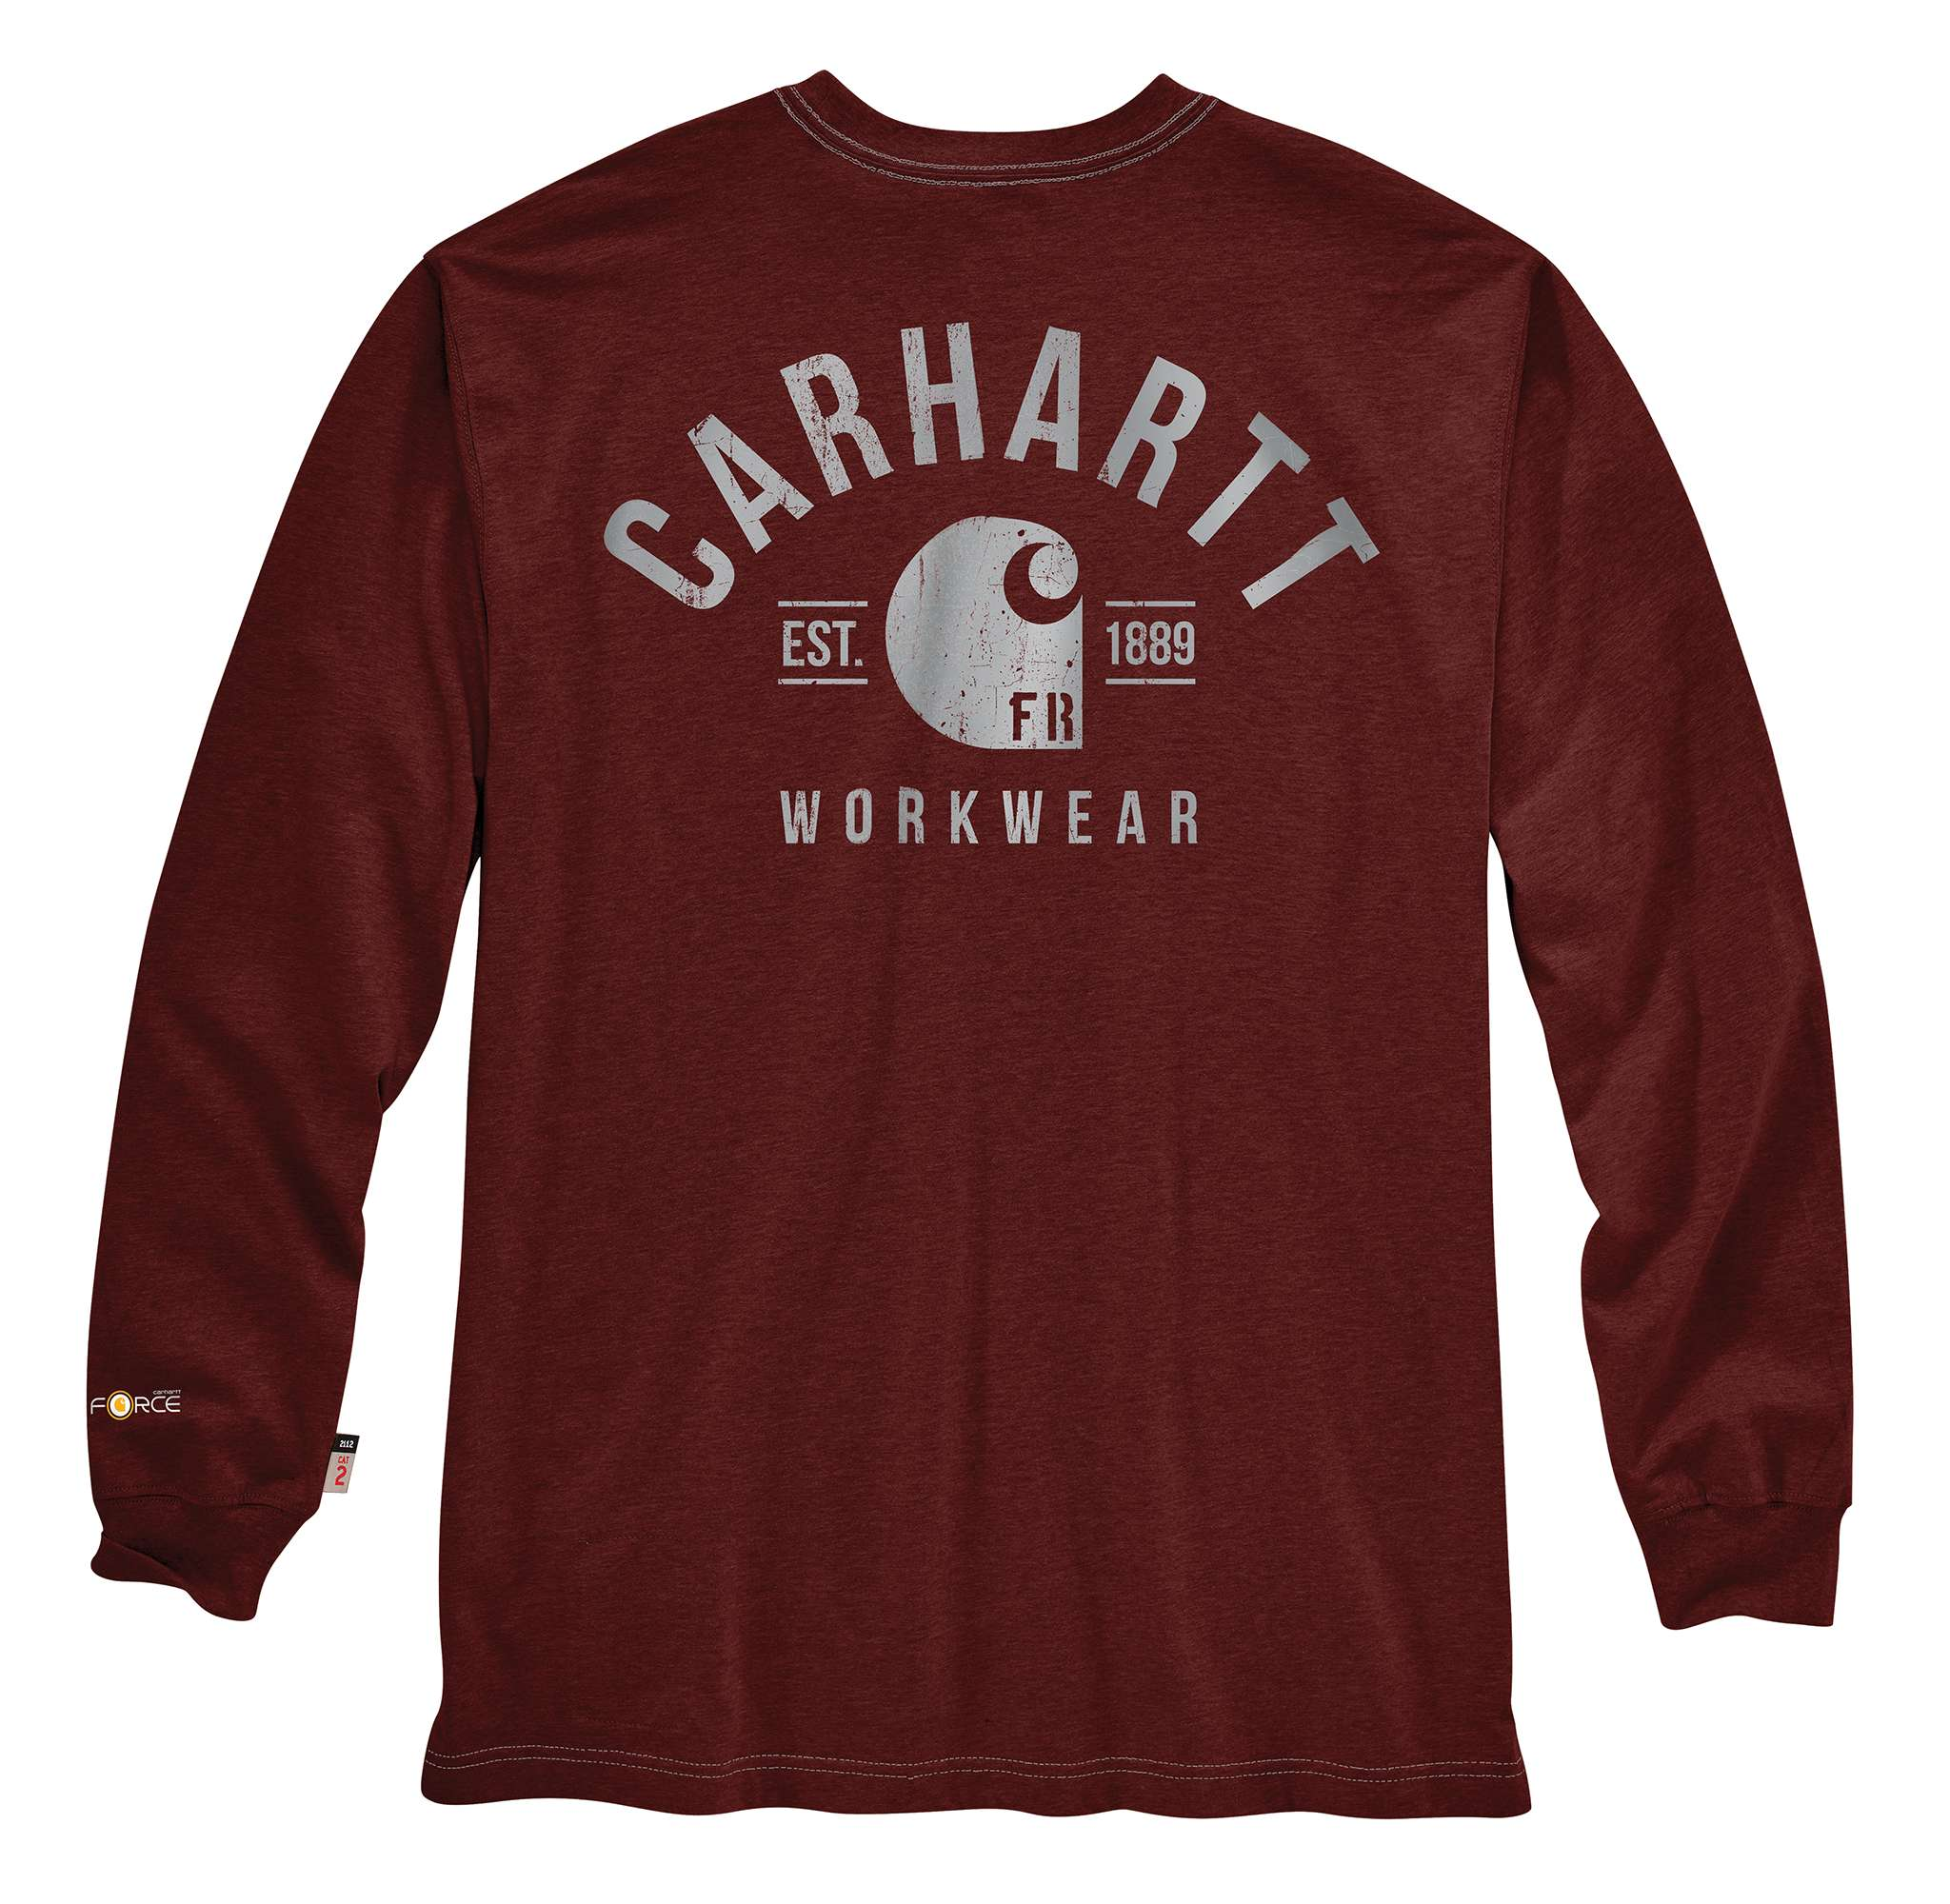 Carhartt Force Original Fit Long-Sleeve Graphic T-Shirt